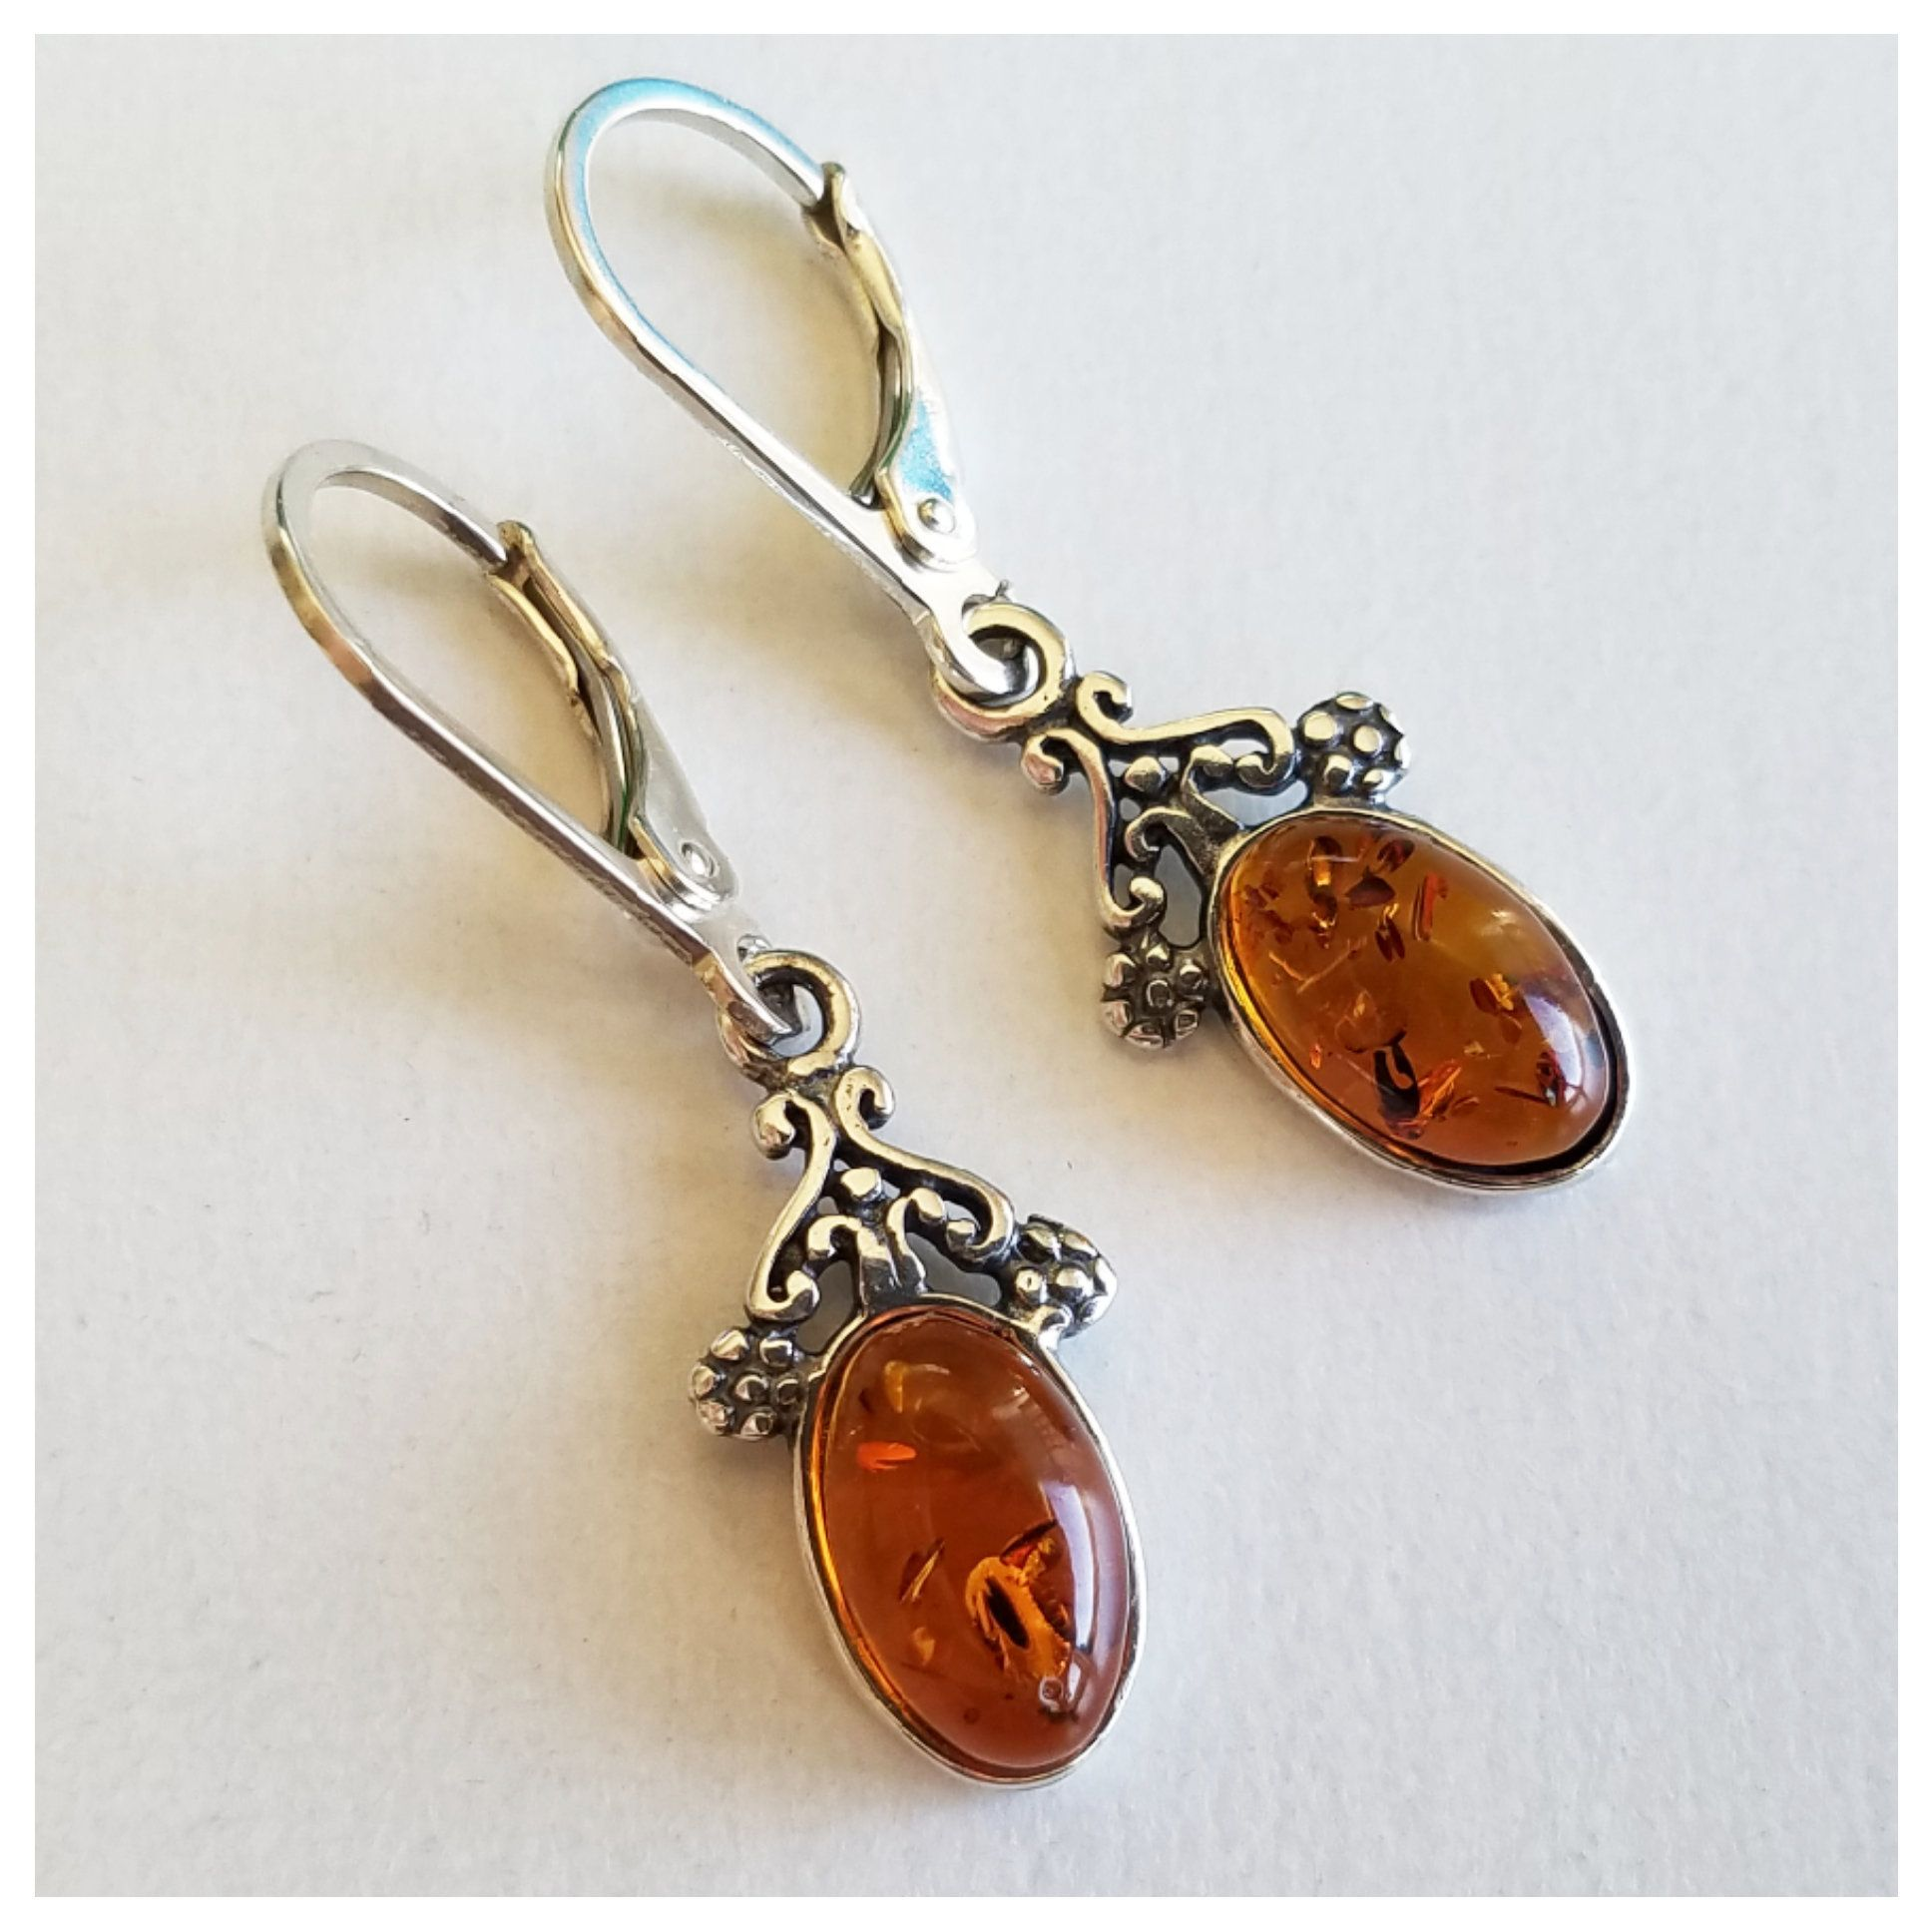 Natural Baltic Amber Earrings In Oxidized Sterling Silver Floral Amber Earrings Amber and Silver Earrings Dangle earrings flower Earrings